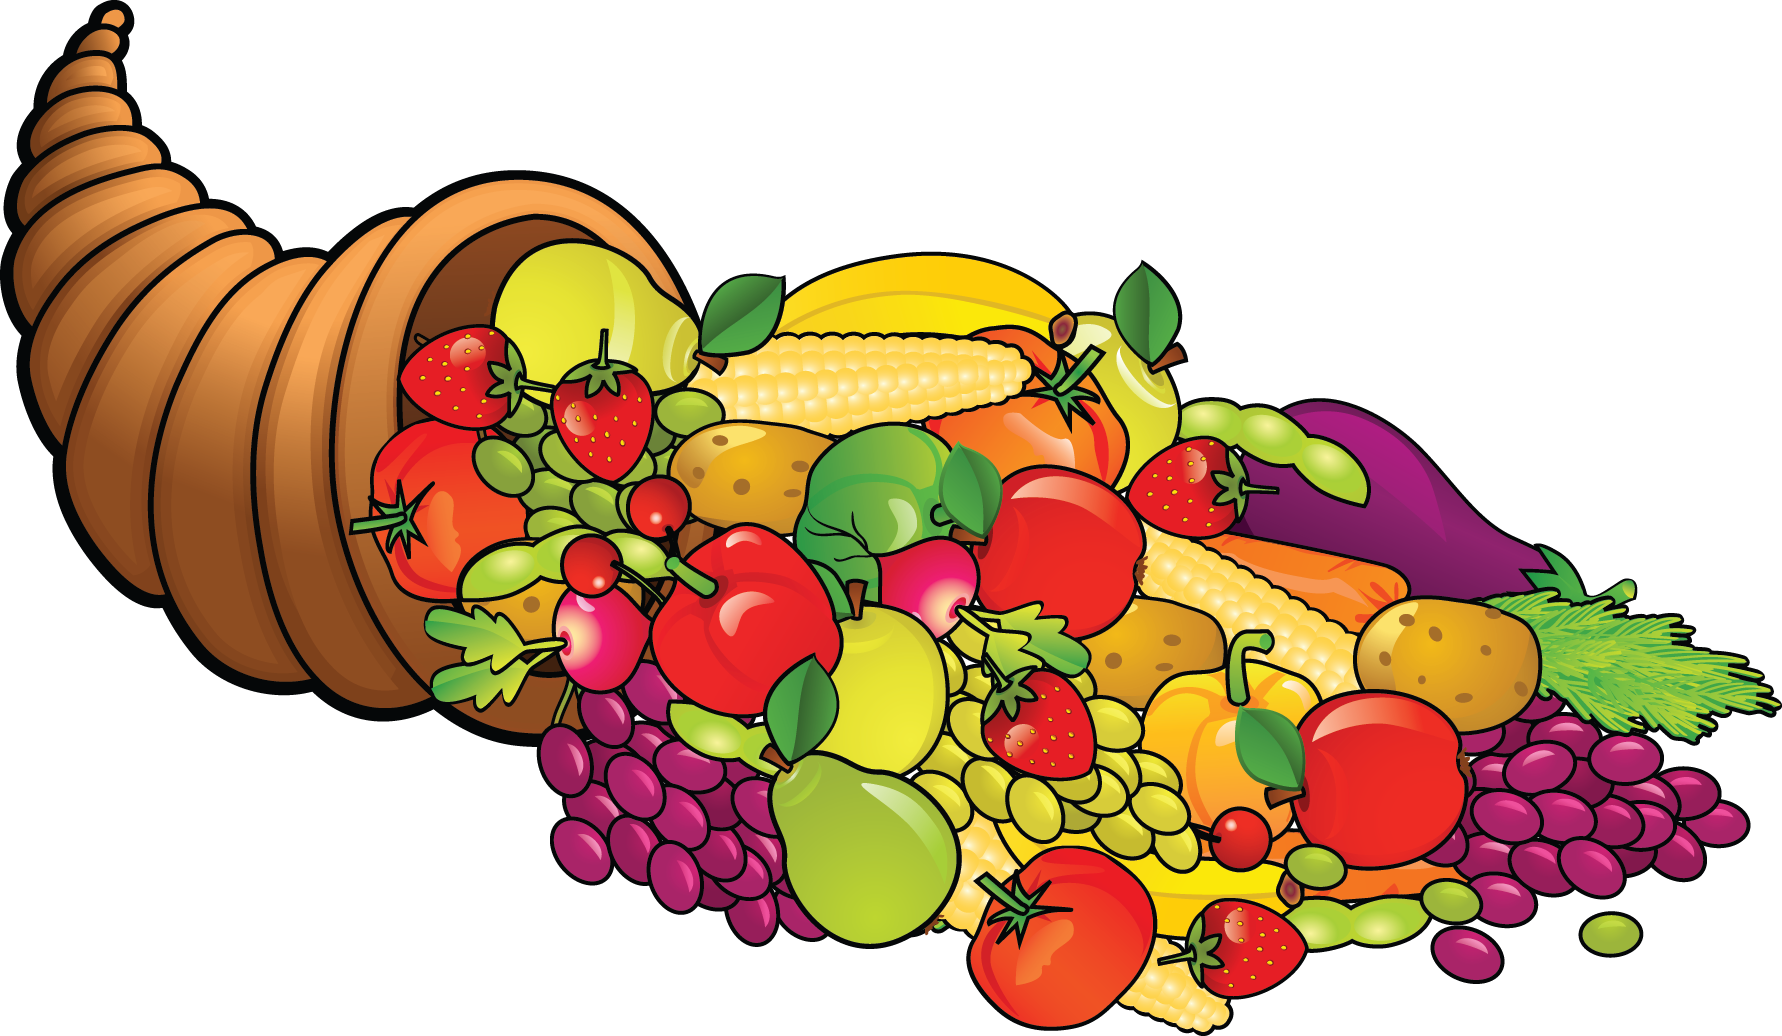 clipart food - Clip Art Food